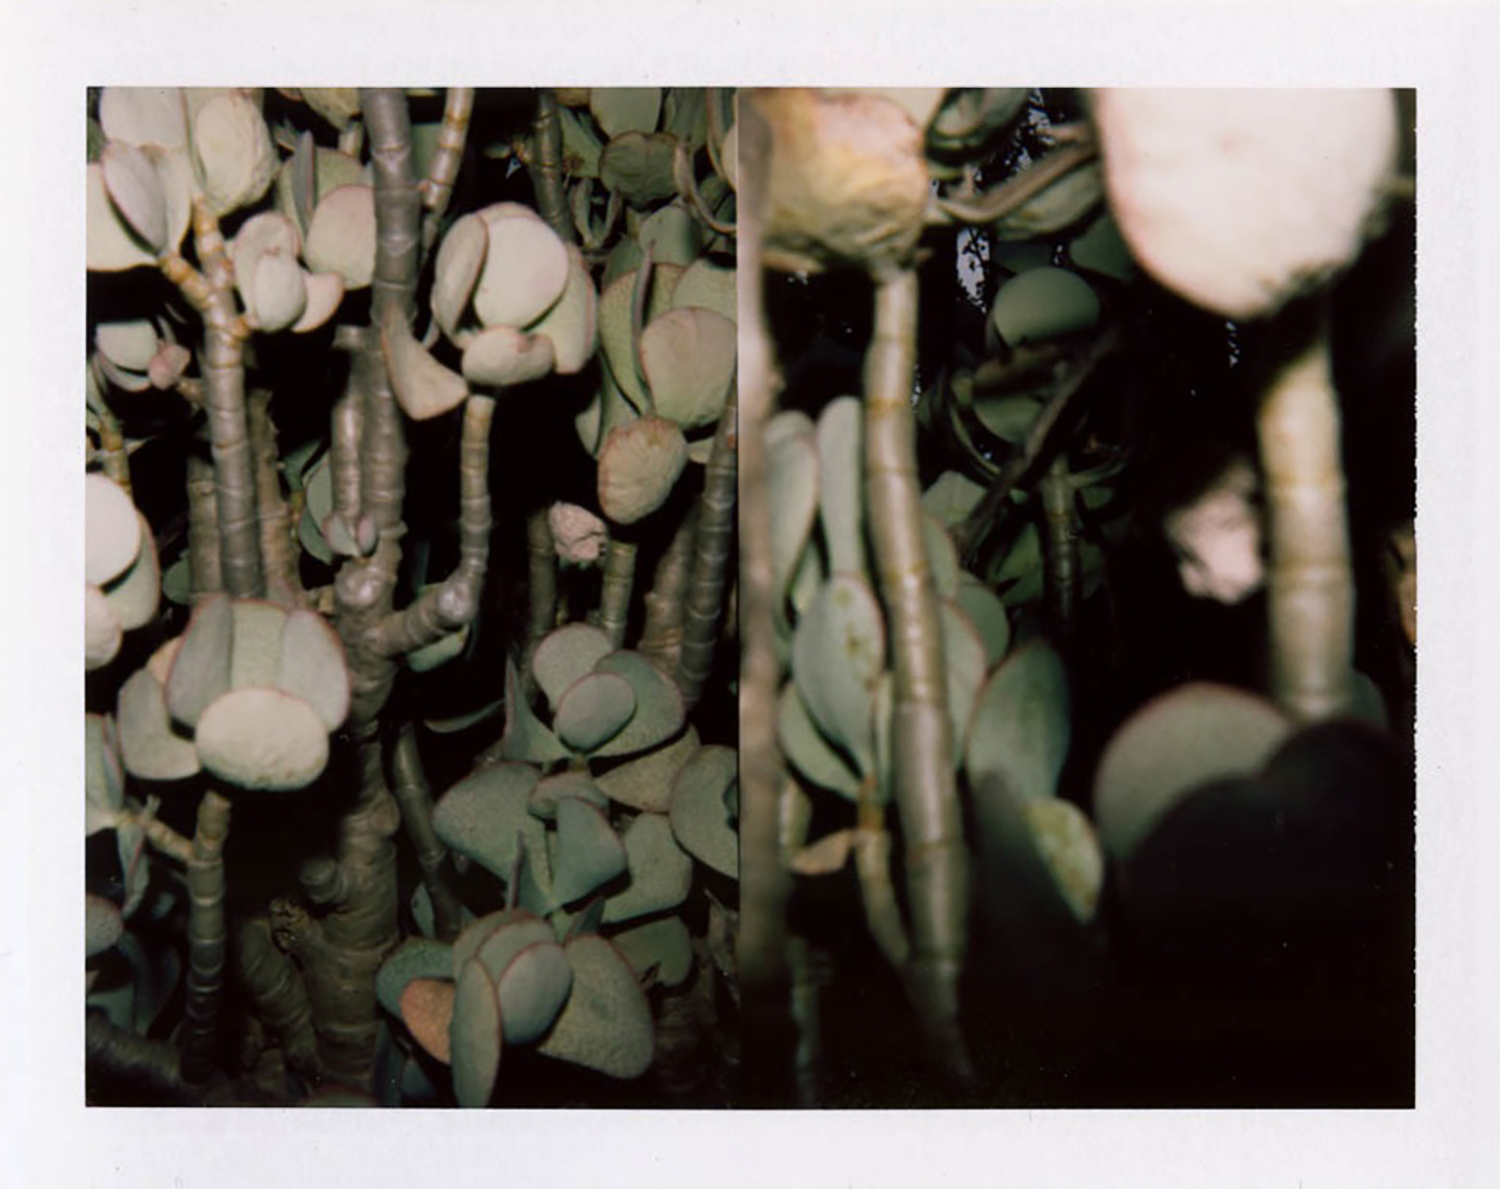 I.D.008, The Polaroid Revolutionary Workers, 2013, Polaroid Picture, 107mm x 86mm